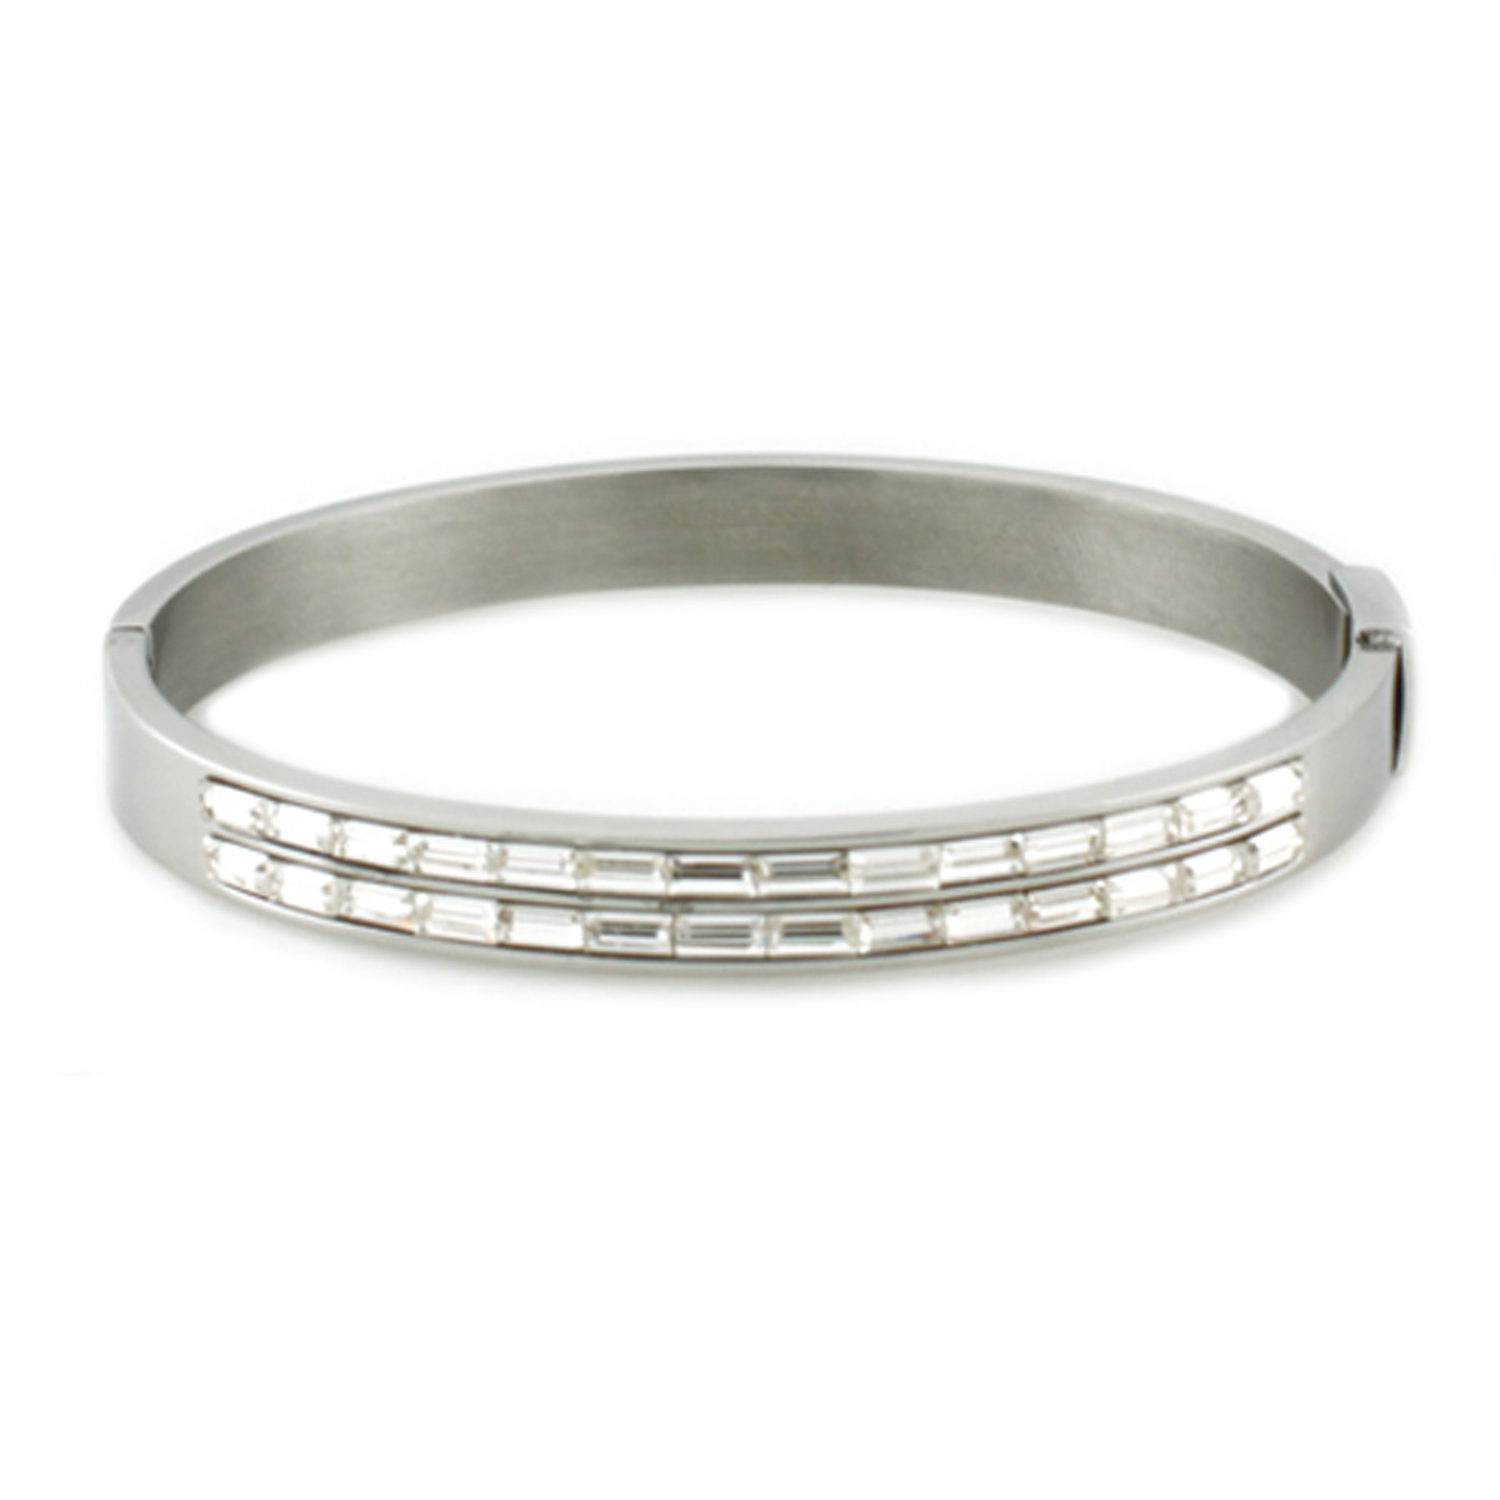 Stainless Steel Baguette CZ Channel Oval BANGLE